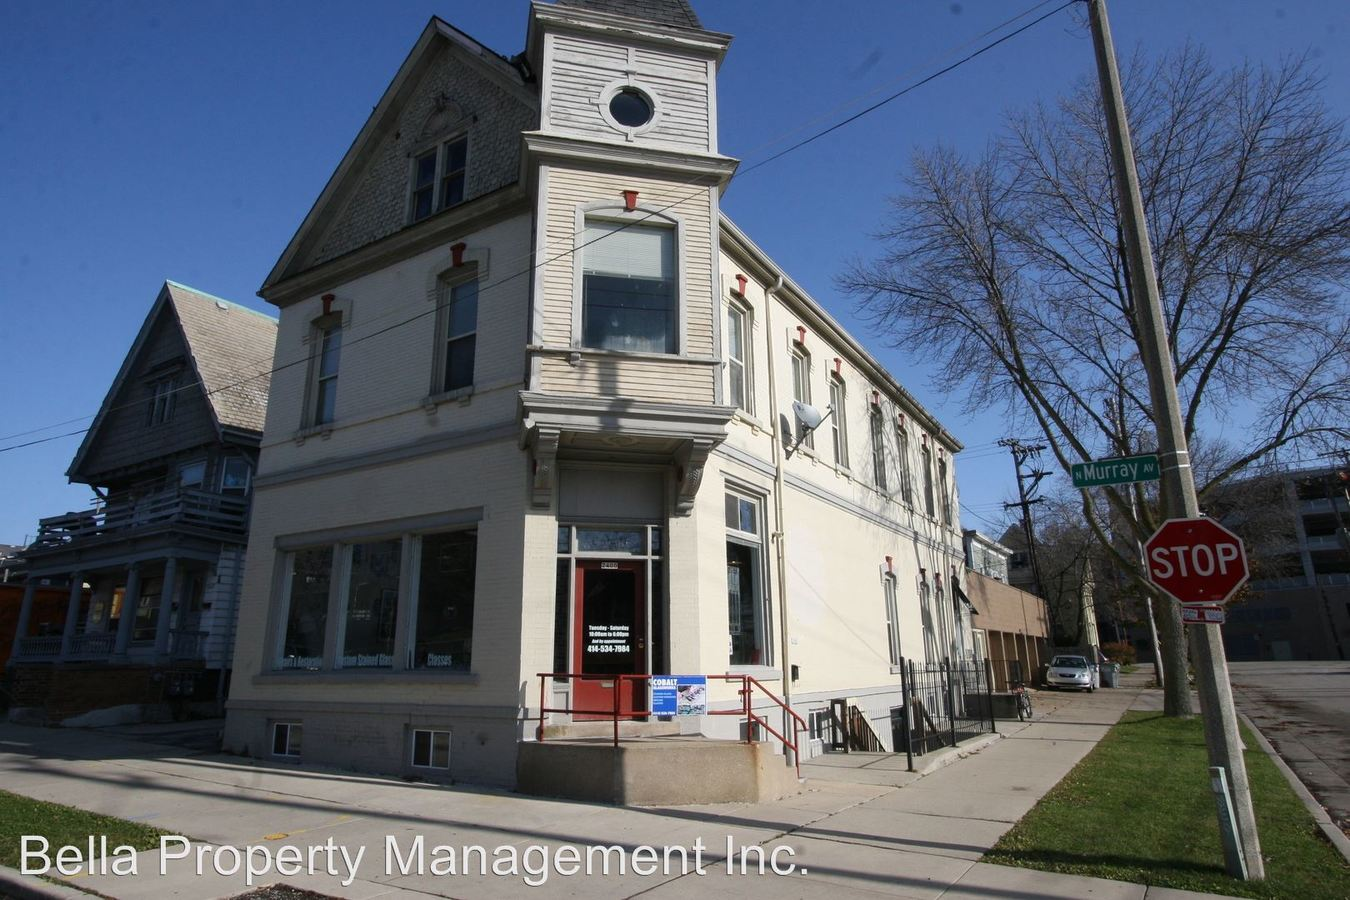 2 Bedrooms 1 Bathroom Apartment for rent at 2006 - 2010 E Thomas in Milwaukee, WI